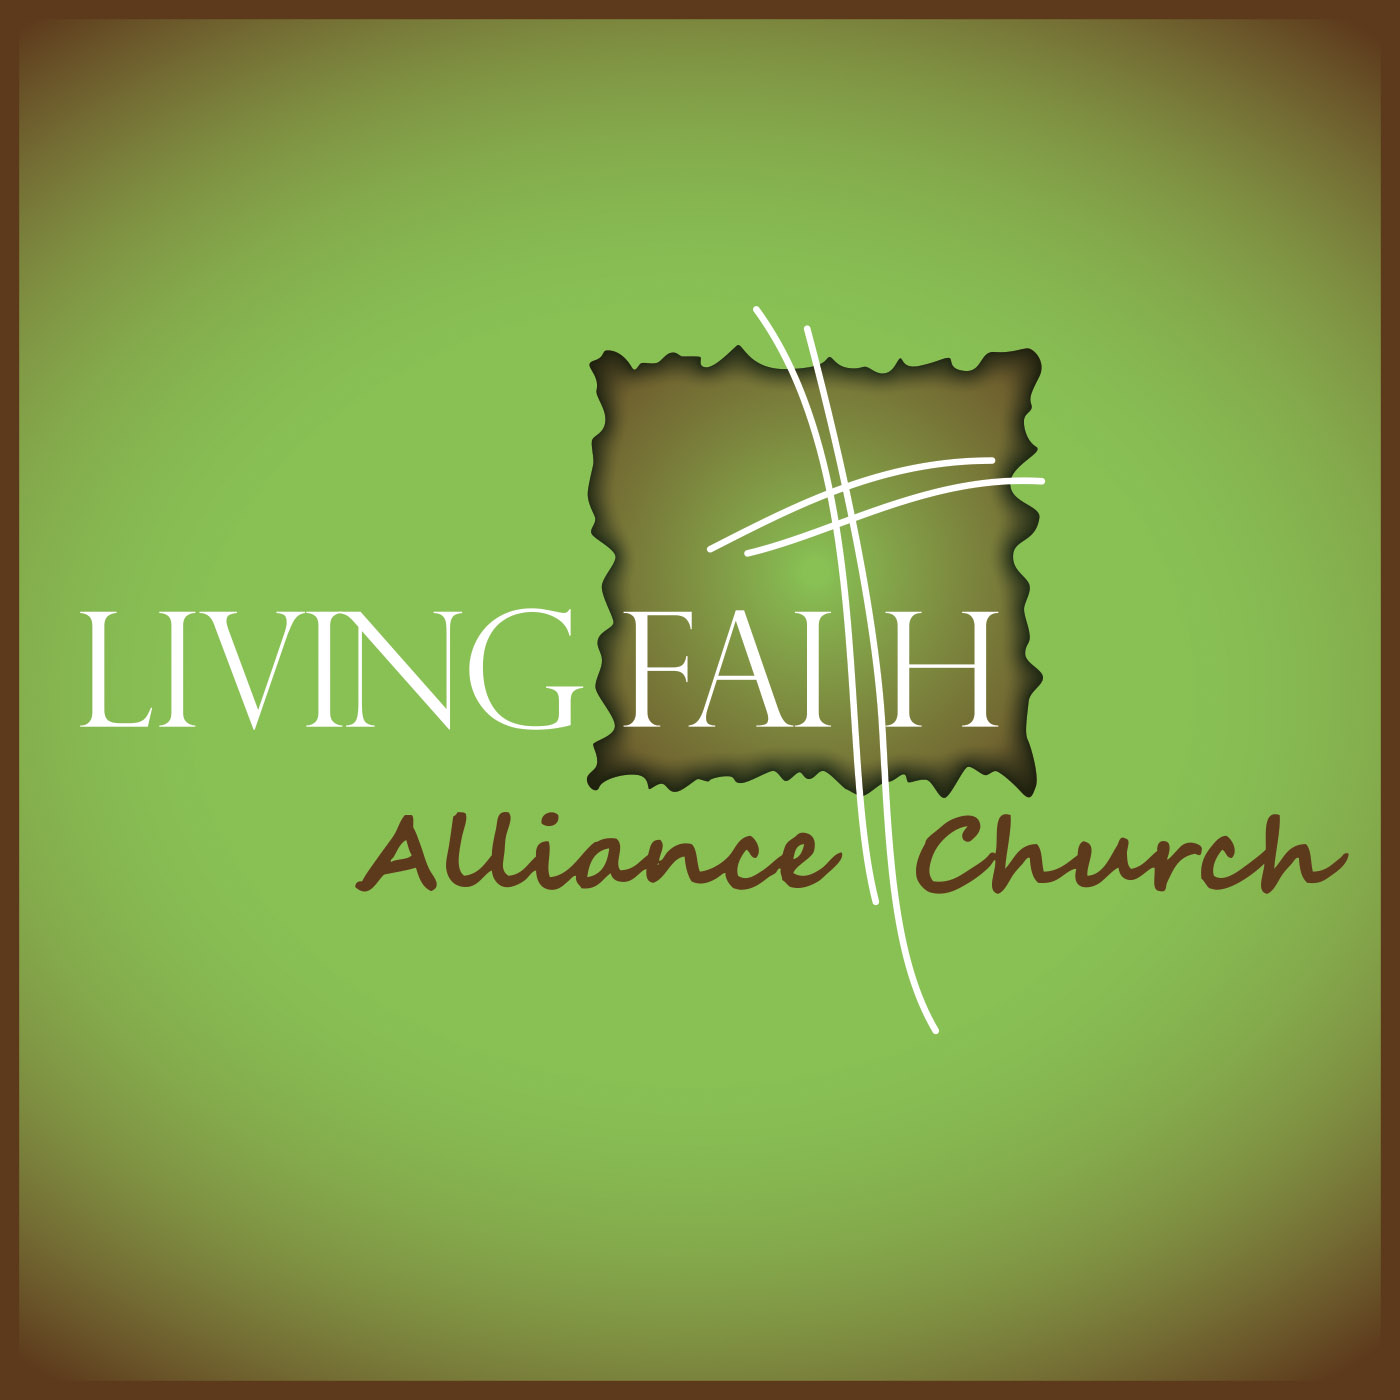 Sermons - Living Faith Alliance Church